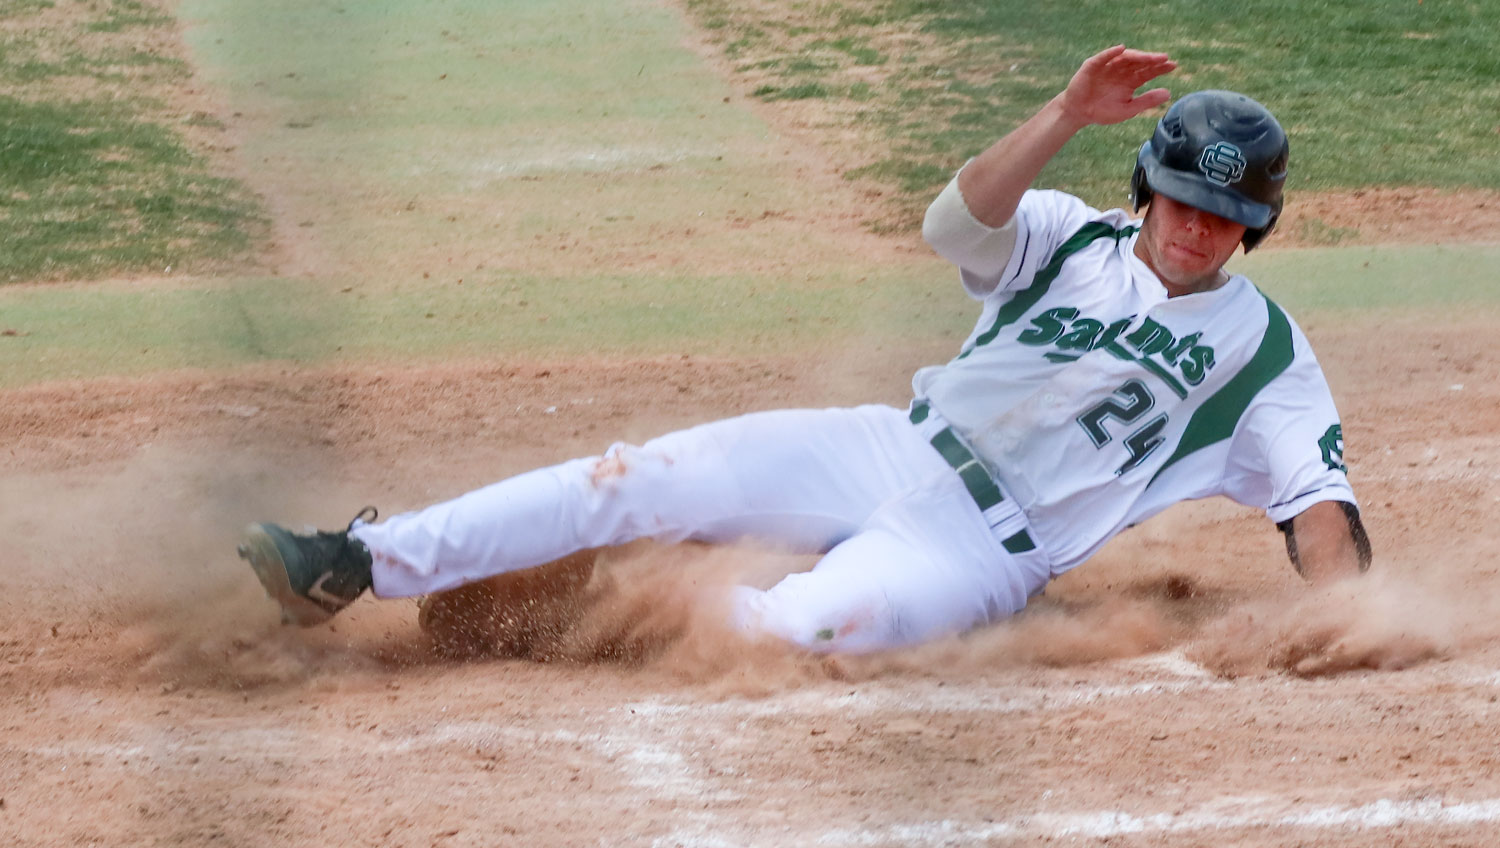 Sliding+across+home+plate%2C+Benny+Ayala+scores+a+run+for+the+Saints+midway+through+the+nine+inning+game.+%0A